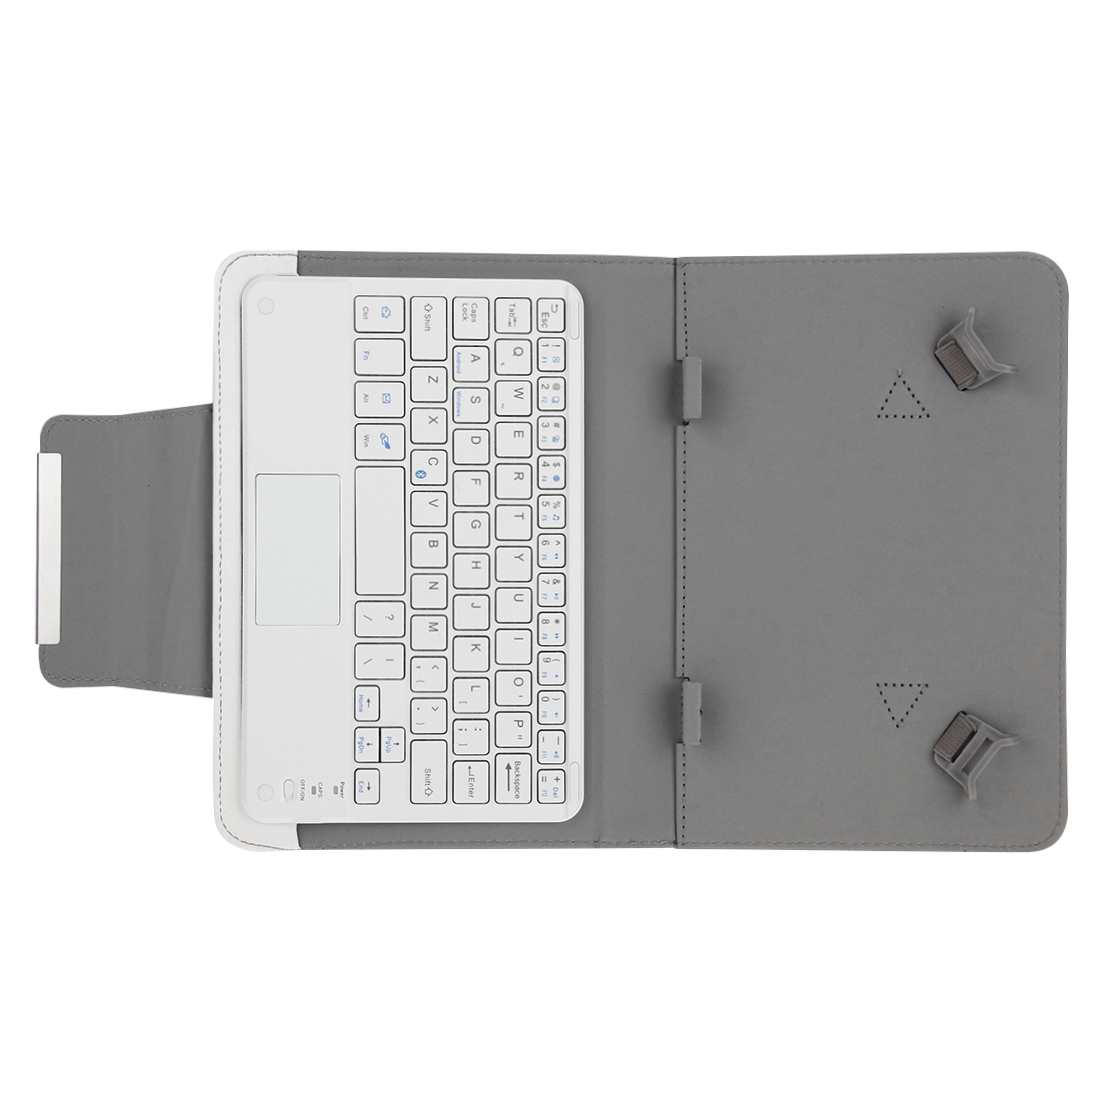 Wireless Bluetooth Keyboard For iPad, Compatible With 10.1 Inch iSO & Tablets (White)